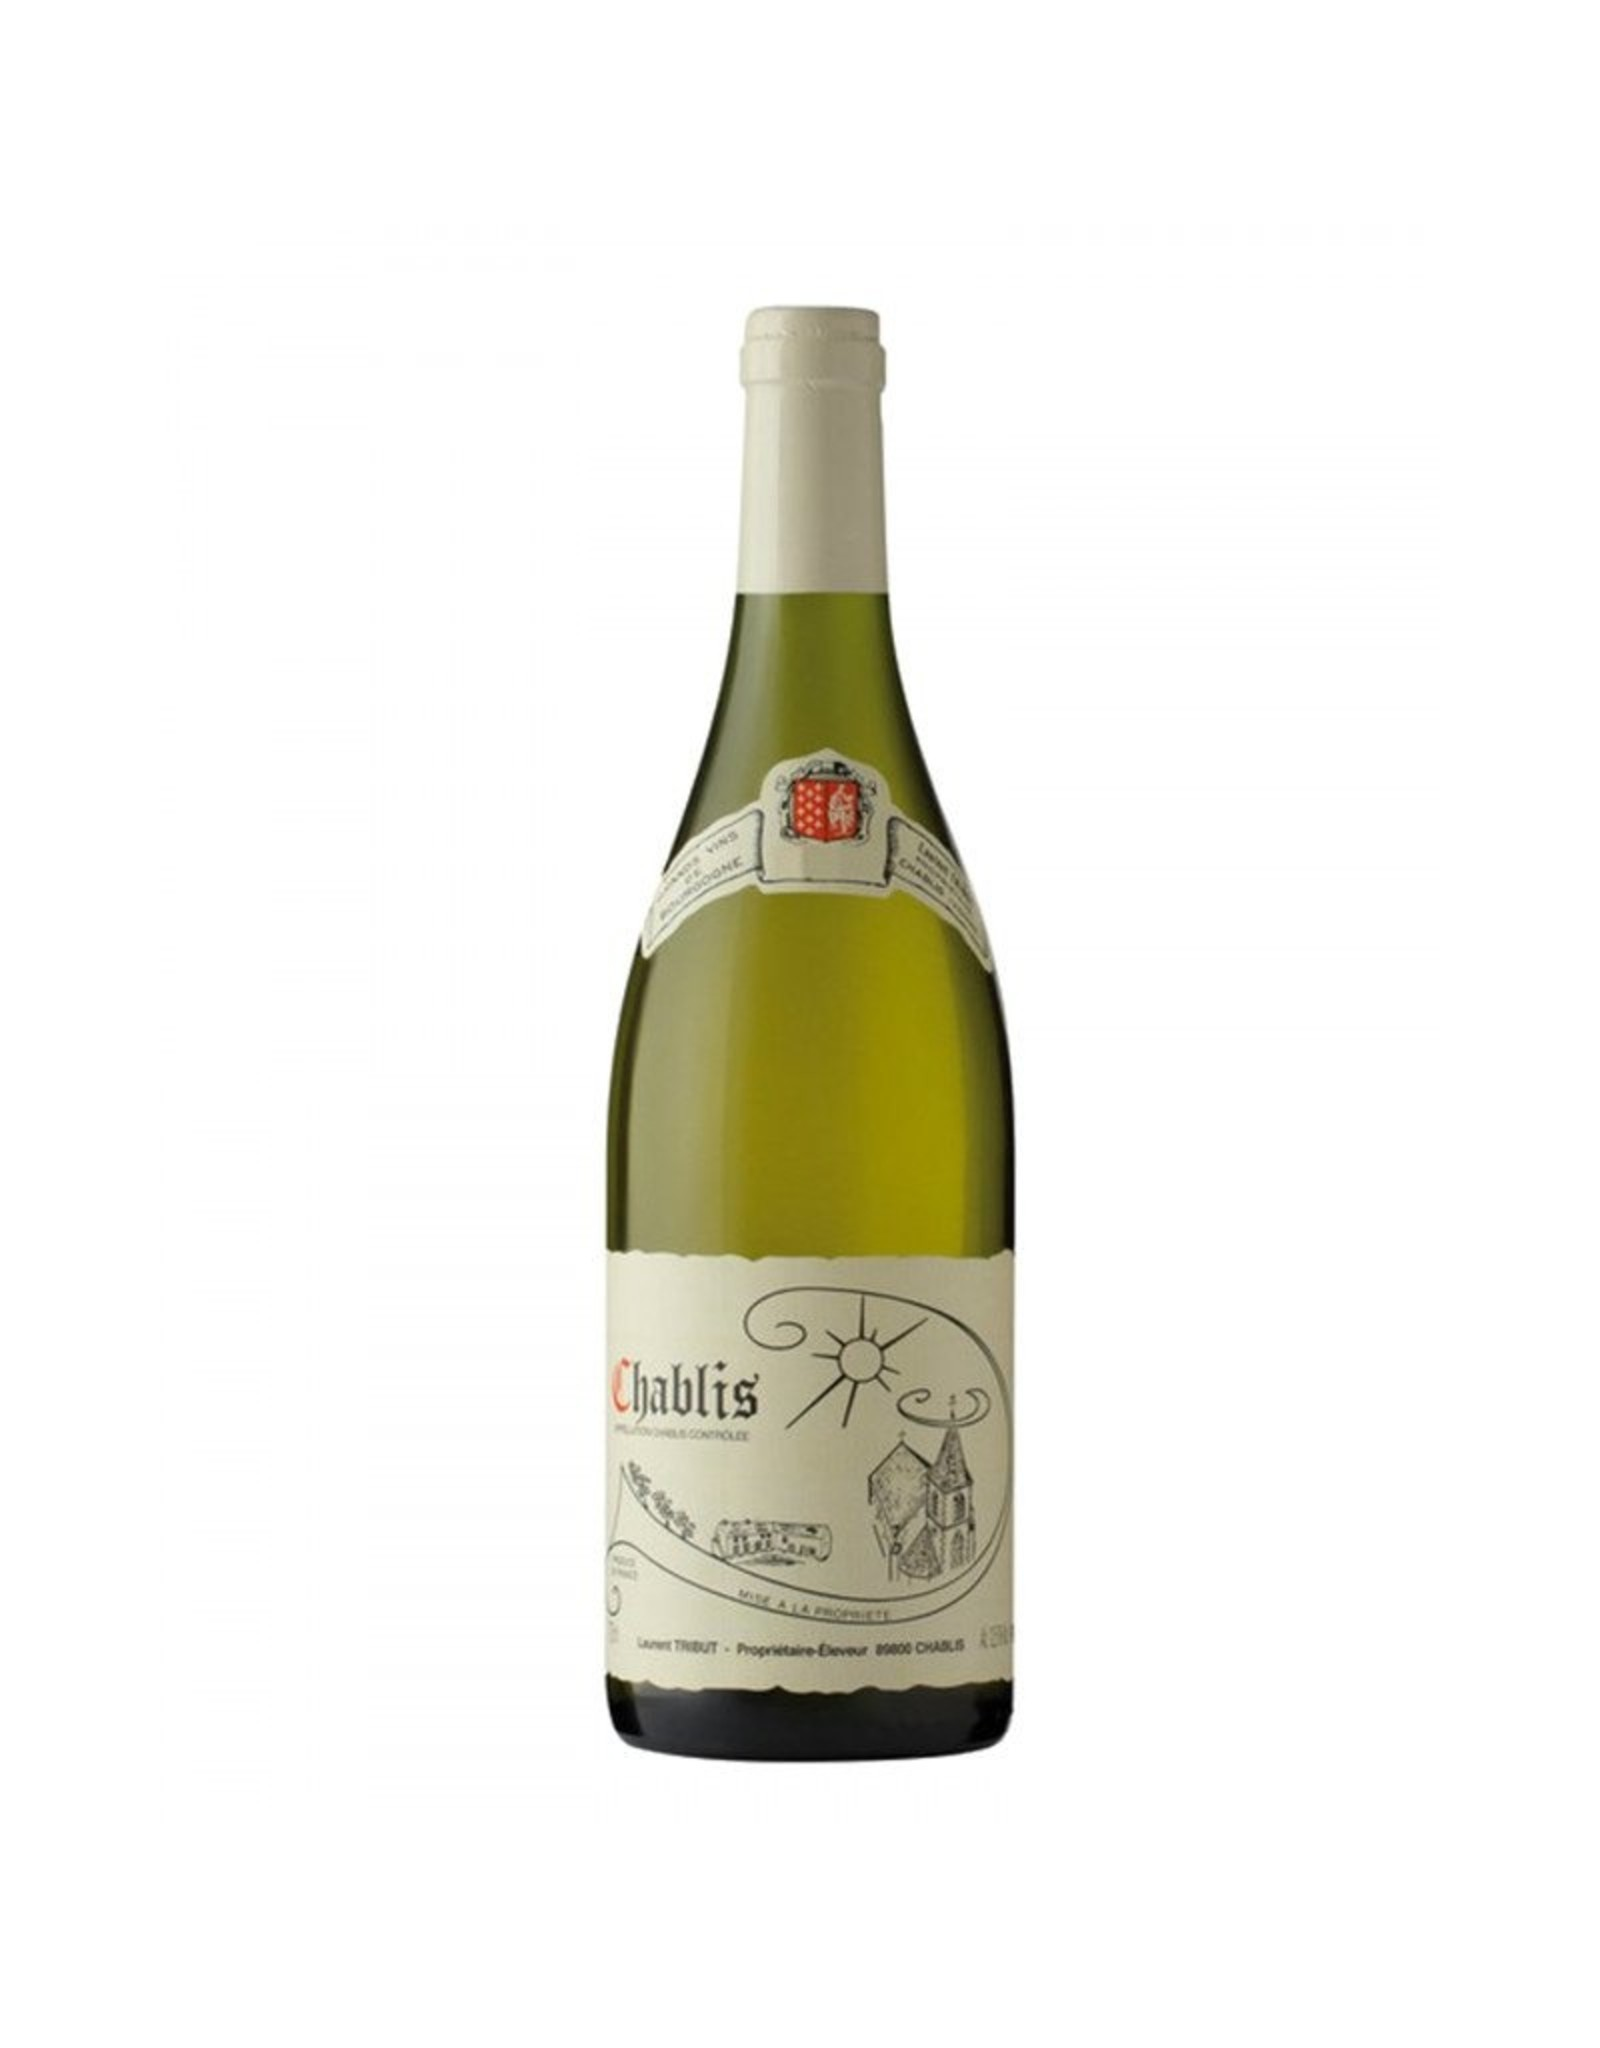 Proef Laurent Tribut Chablis